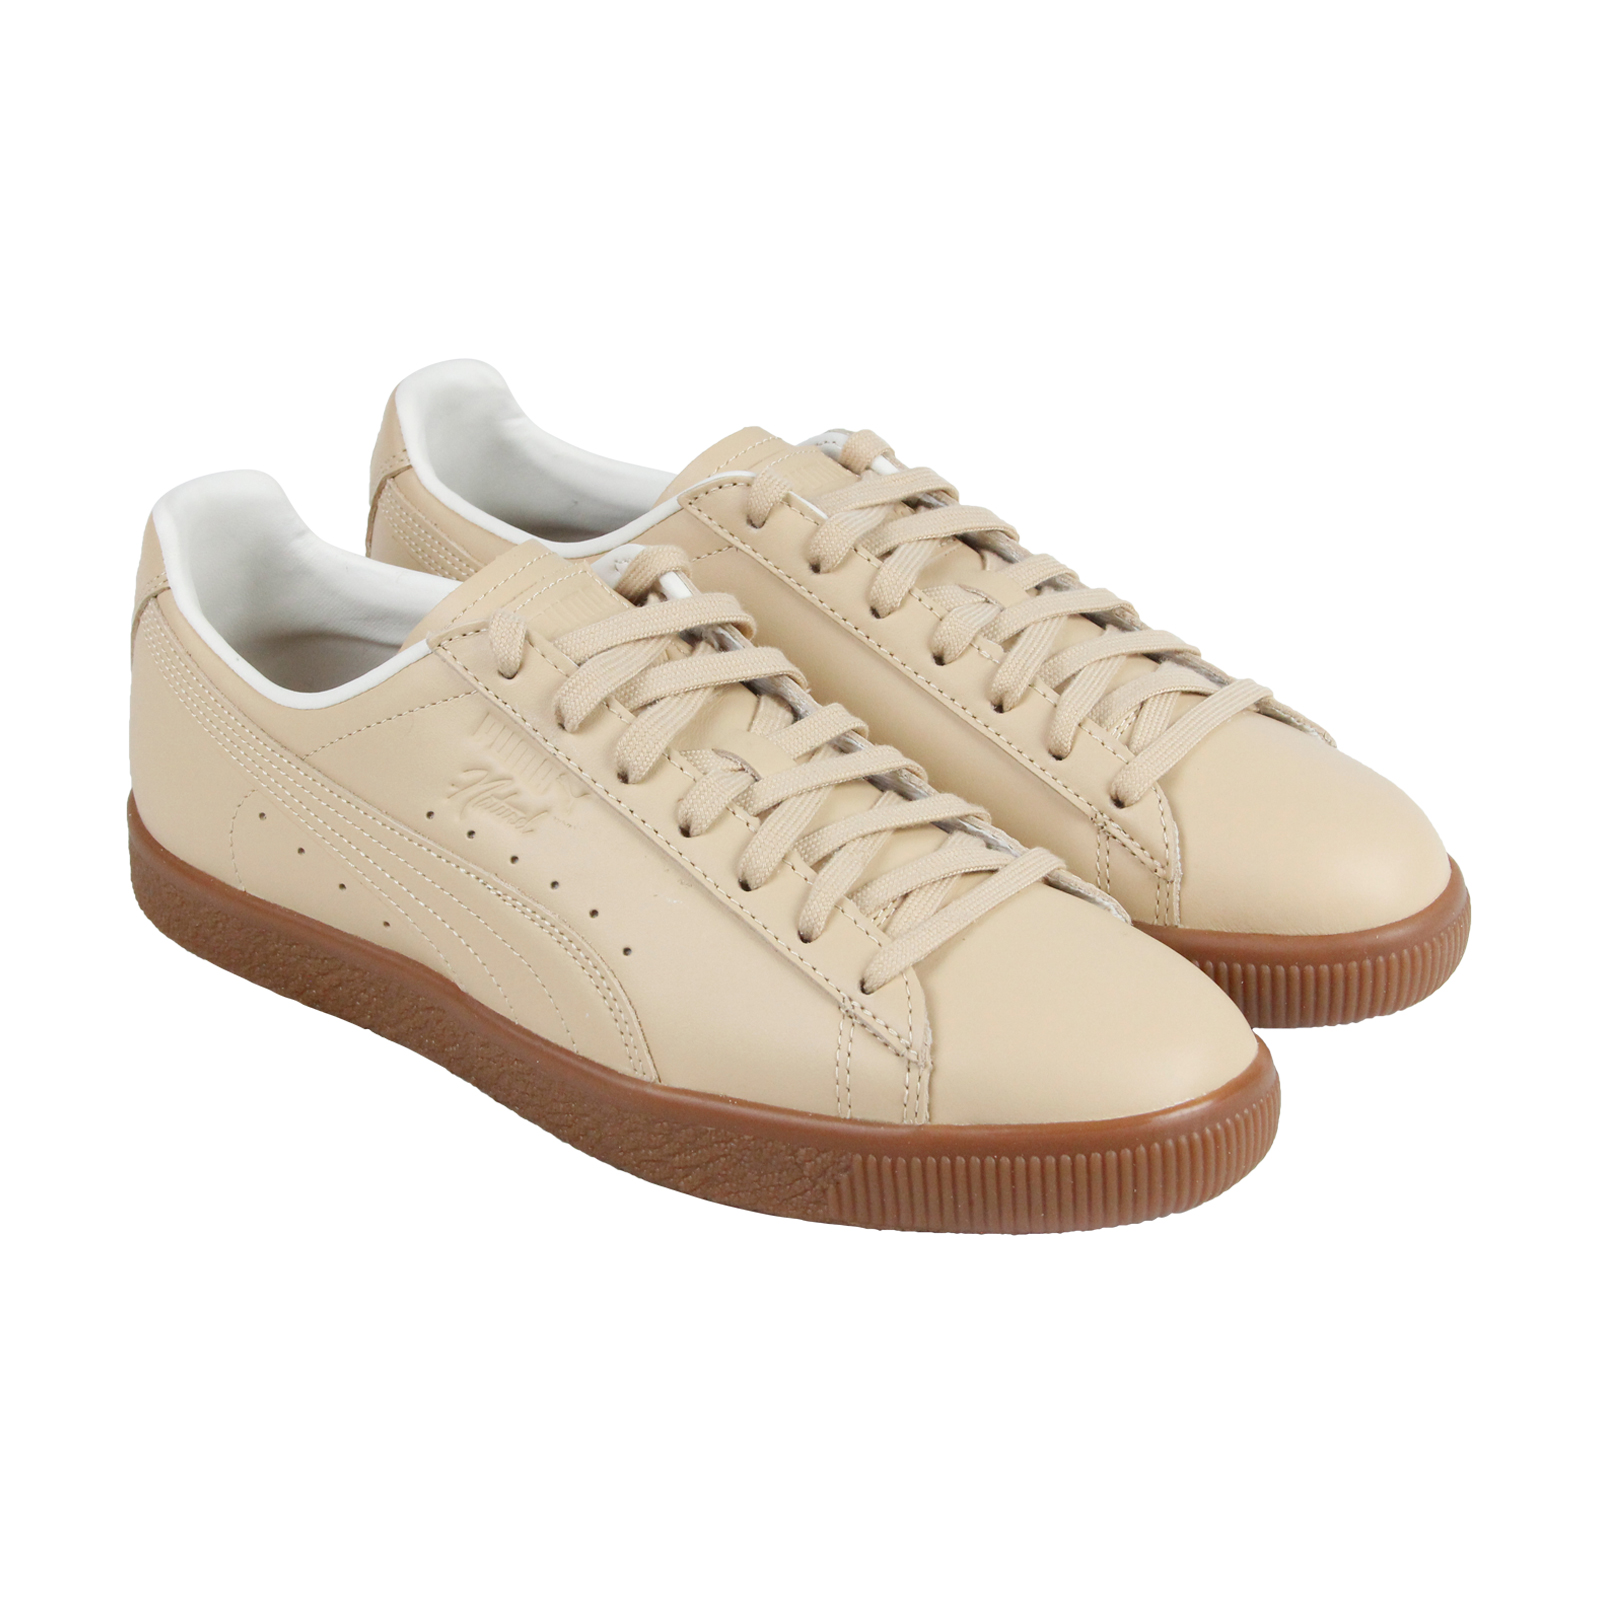 Puma Clyde Vegan Mens Beige Leather Lace Up Sneakers Shoes